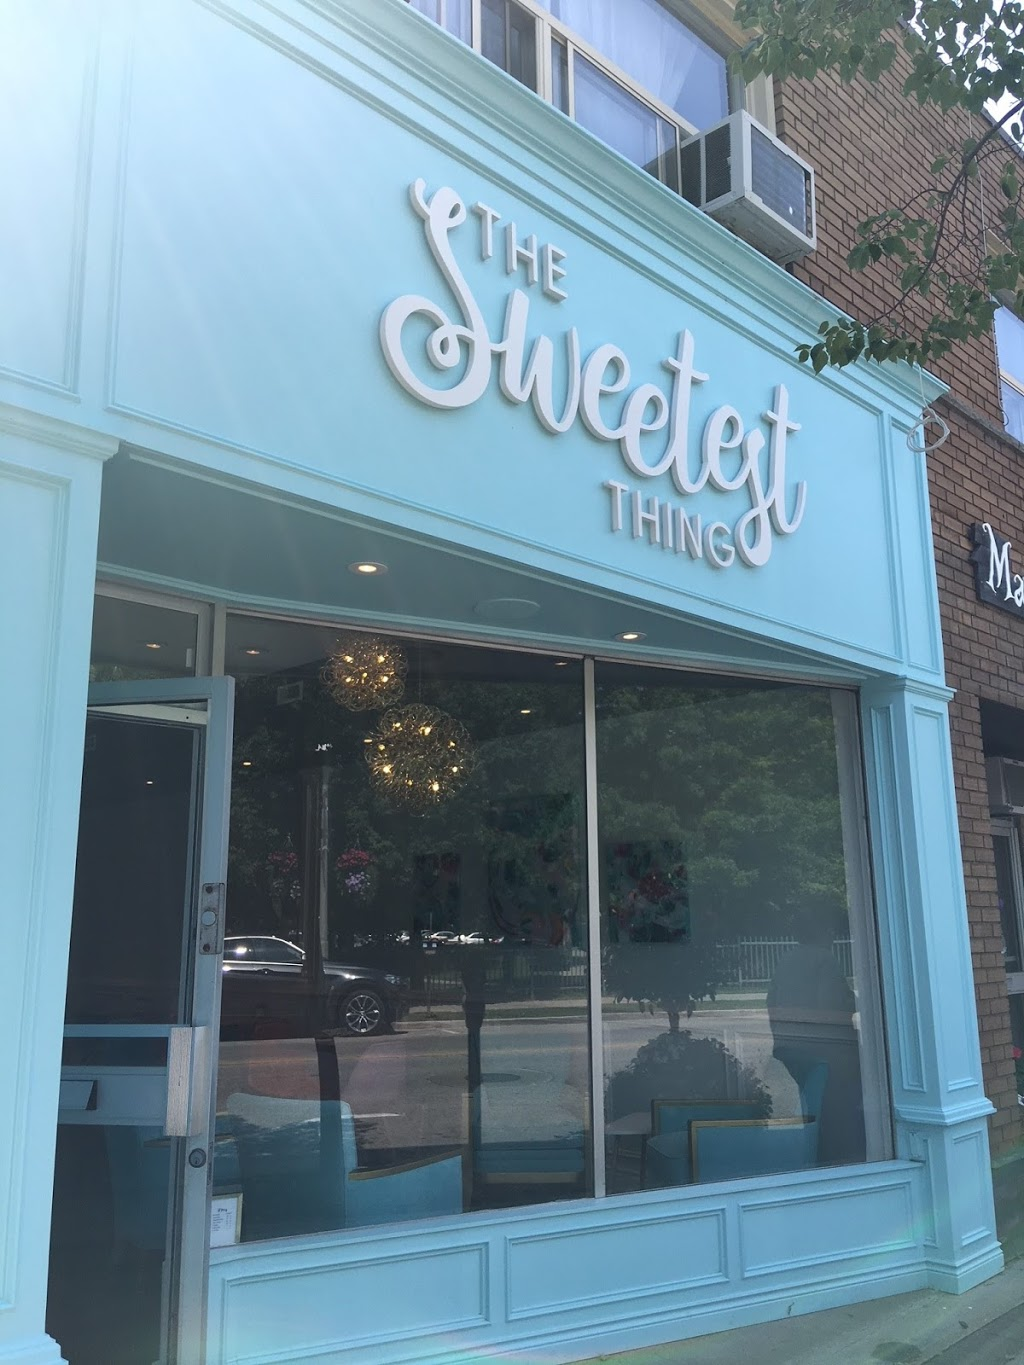 The Sweetest Thing | bakery | 282 Kerr St, Oakville, ON L6K 3B3, Canada | 9055820862 OR +1 905-582-0862